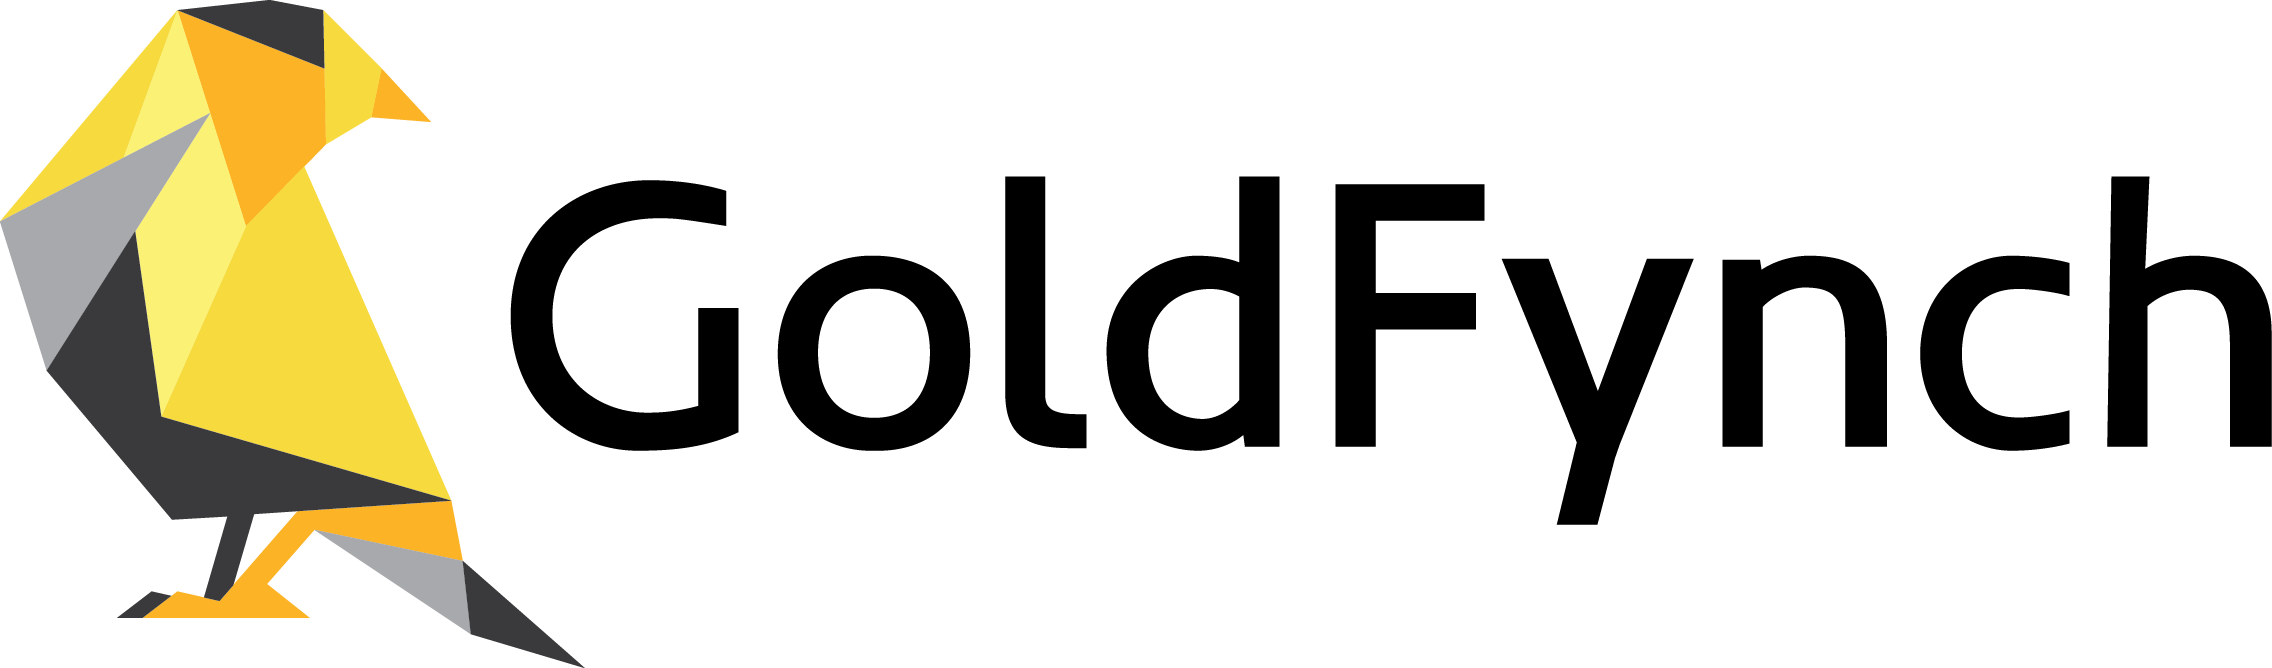 GoldFynch logo